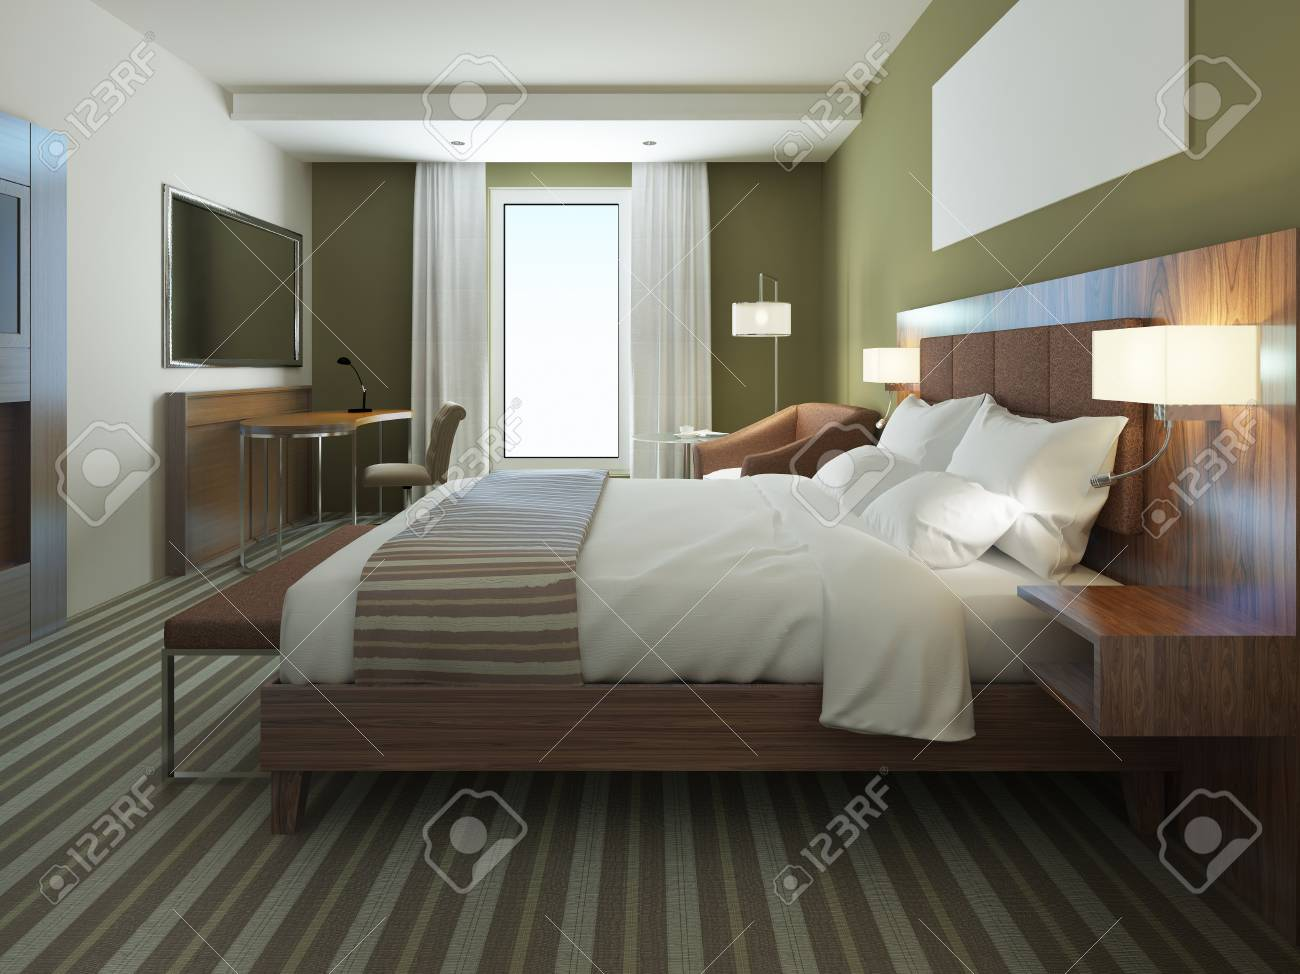 Welche Farbe Ins Schlafzimmer Stock Photo